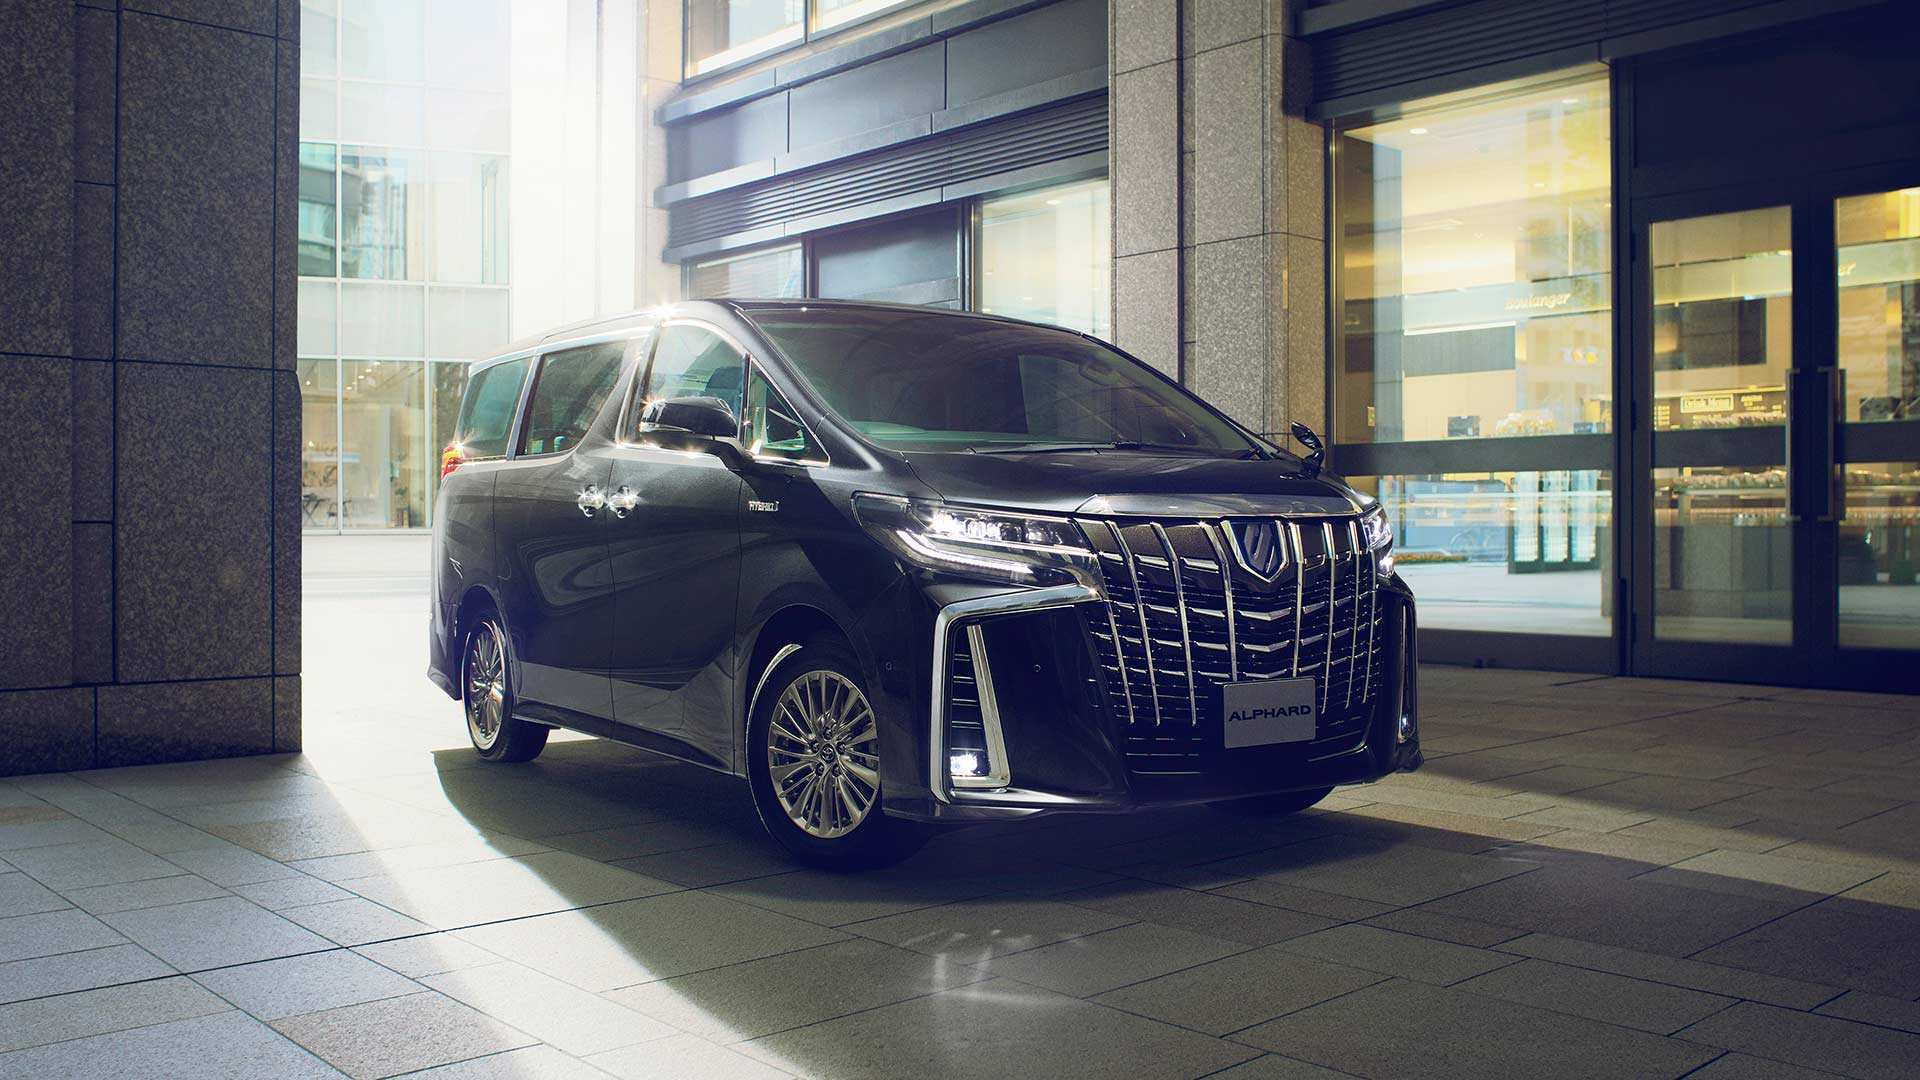 79 Gallery of 2020 Toyota Alphard 2018 Spesification for 2020 Toyota Alphard 2018